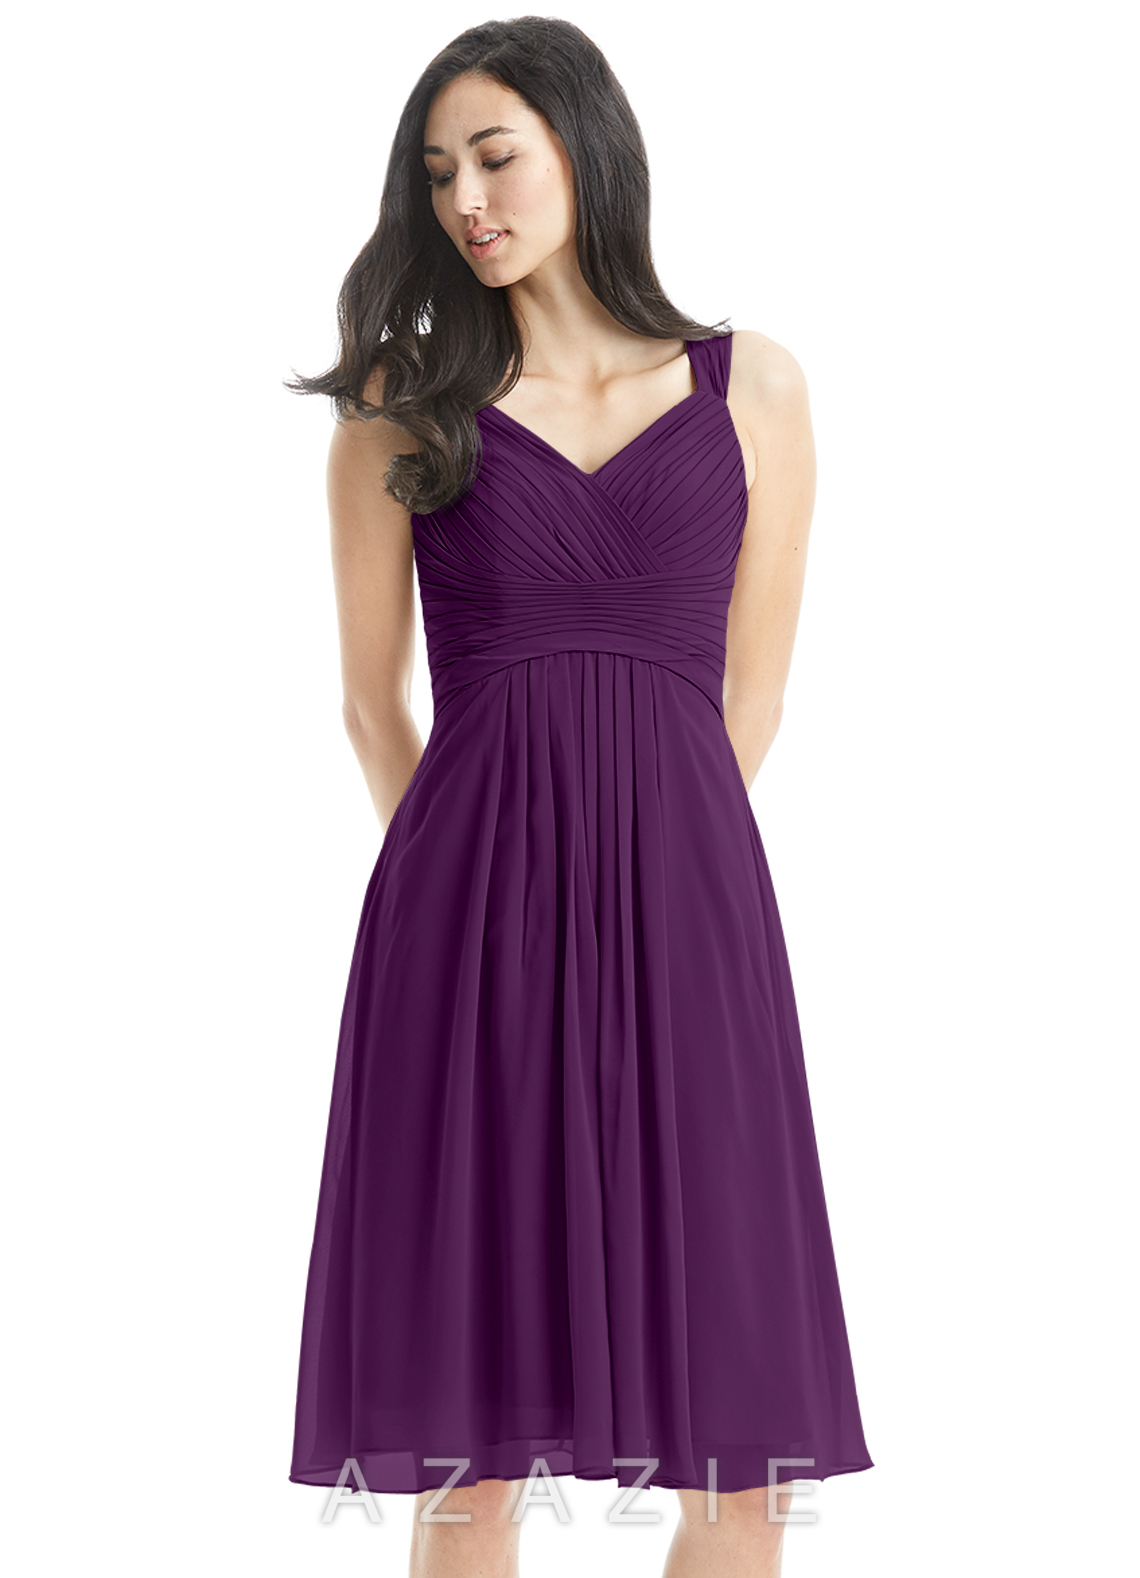 Azazie clara bridesmaid dress azazie home bridesmaid dresses azazie clara azazie clara ombrellifo Images